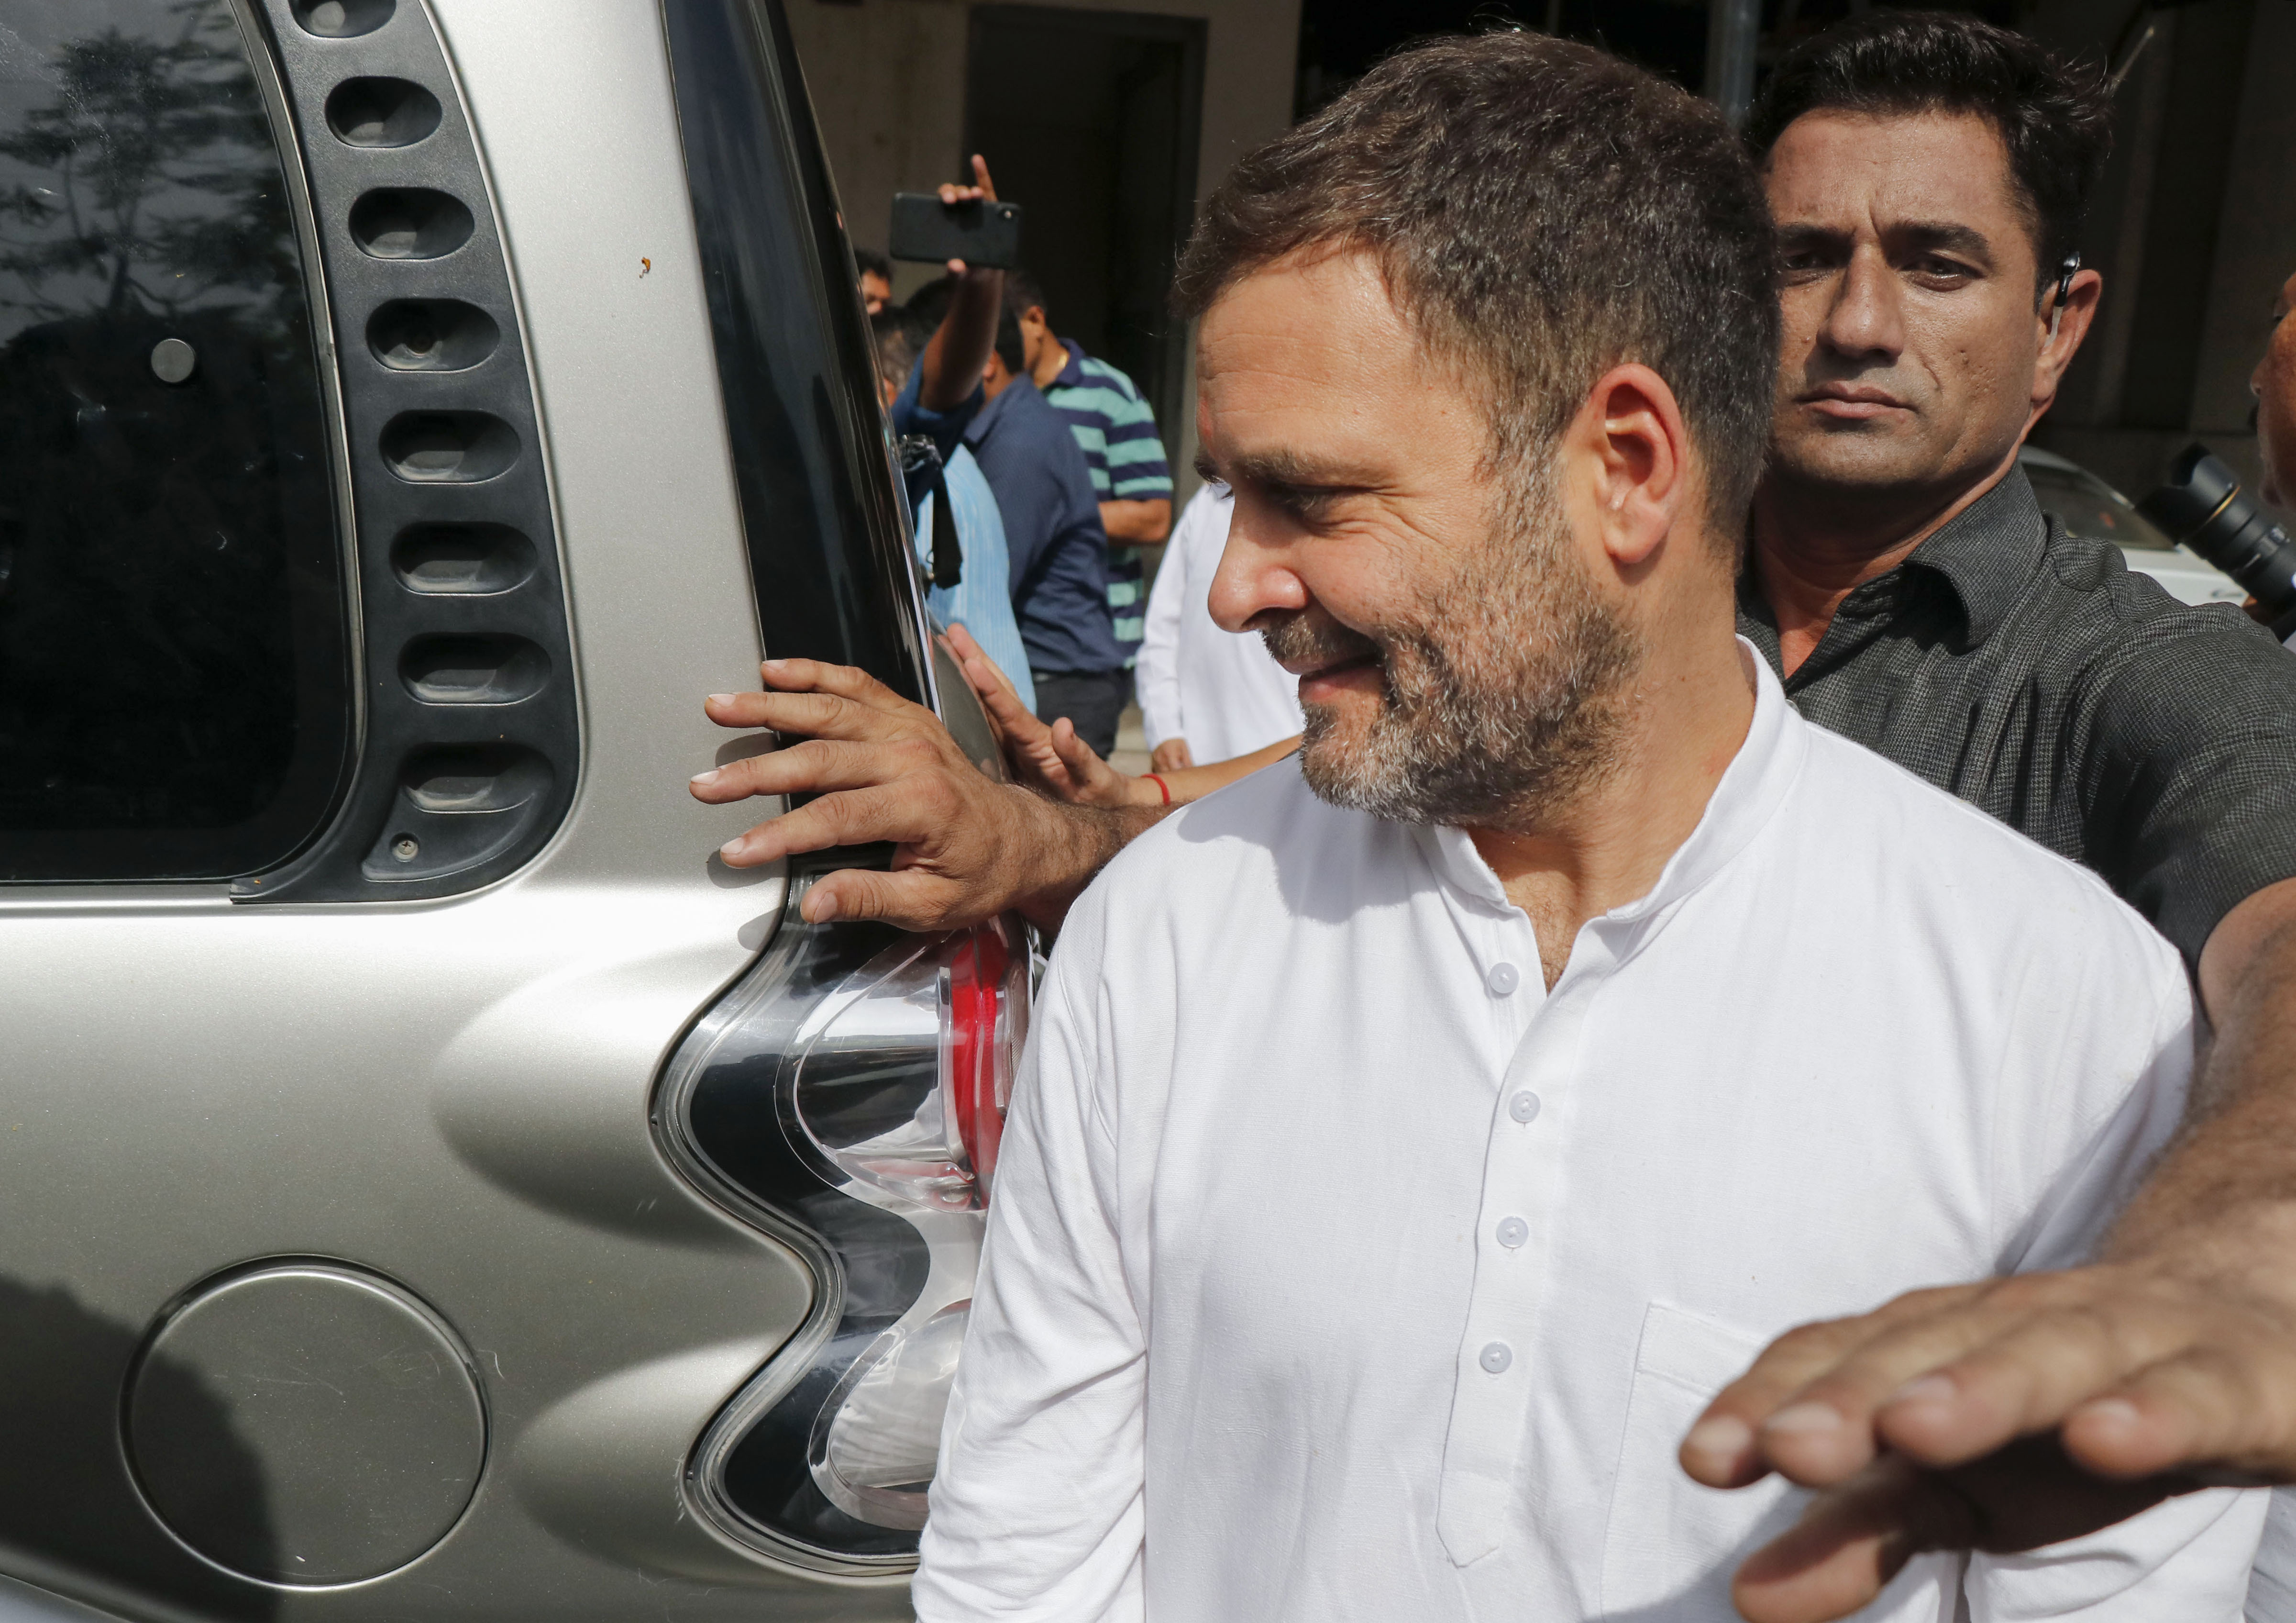 Congress president Rahul Gandhi leaves the metropolitan court in Ahmedabad on July 12.